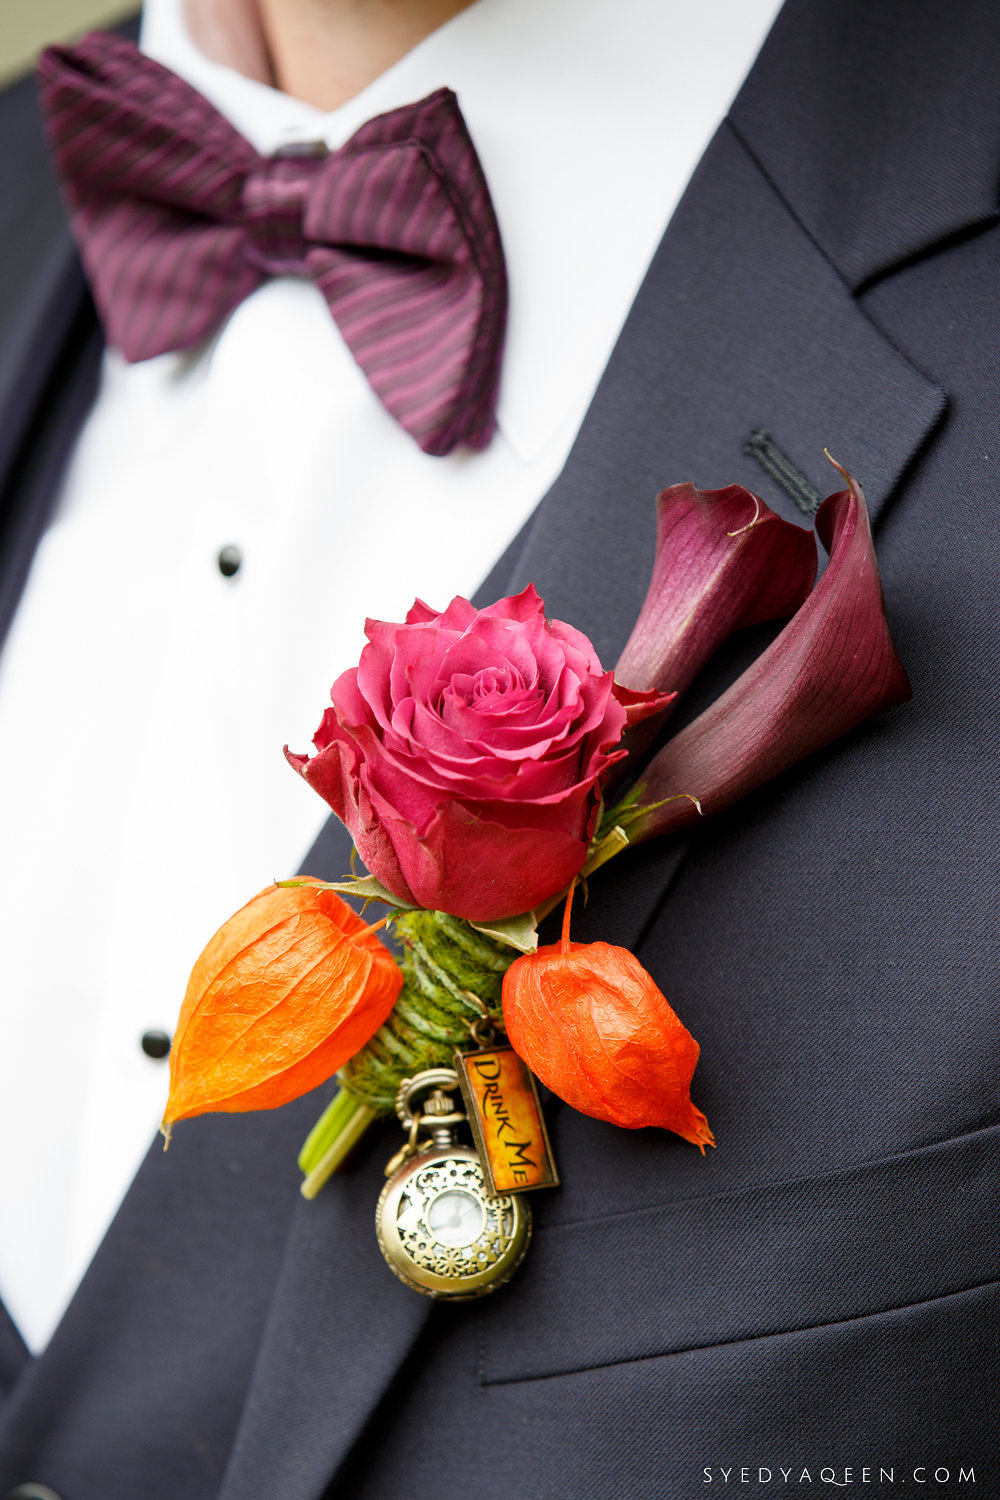 09 Chinese Lantern Pink Rose Purple Calla Lily Pocket Watch Boutonniere MadHatter Boutonniere Aribella Events.JPG